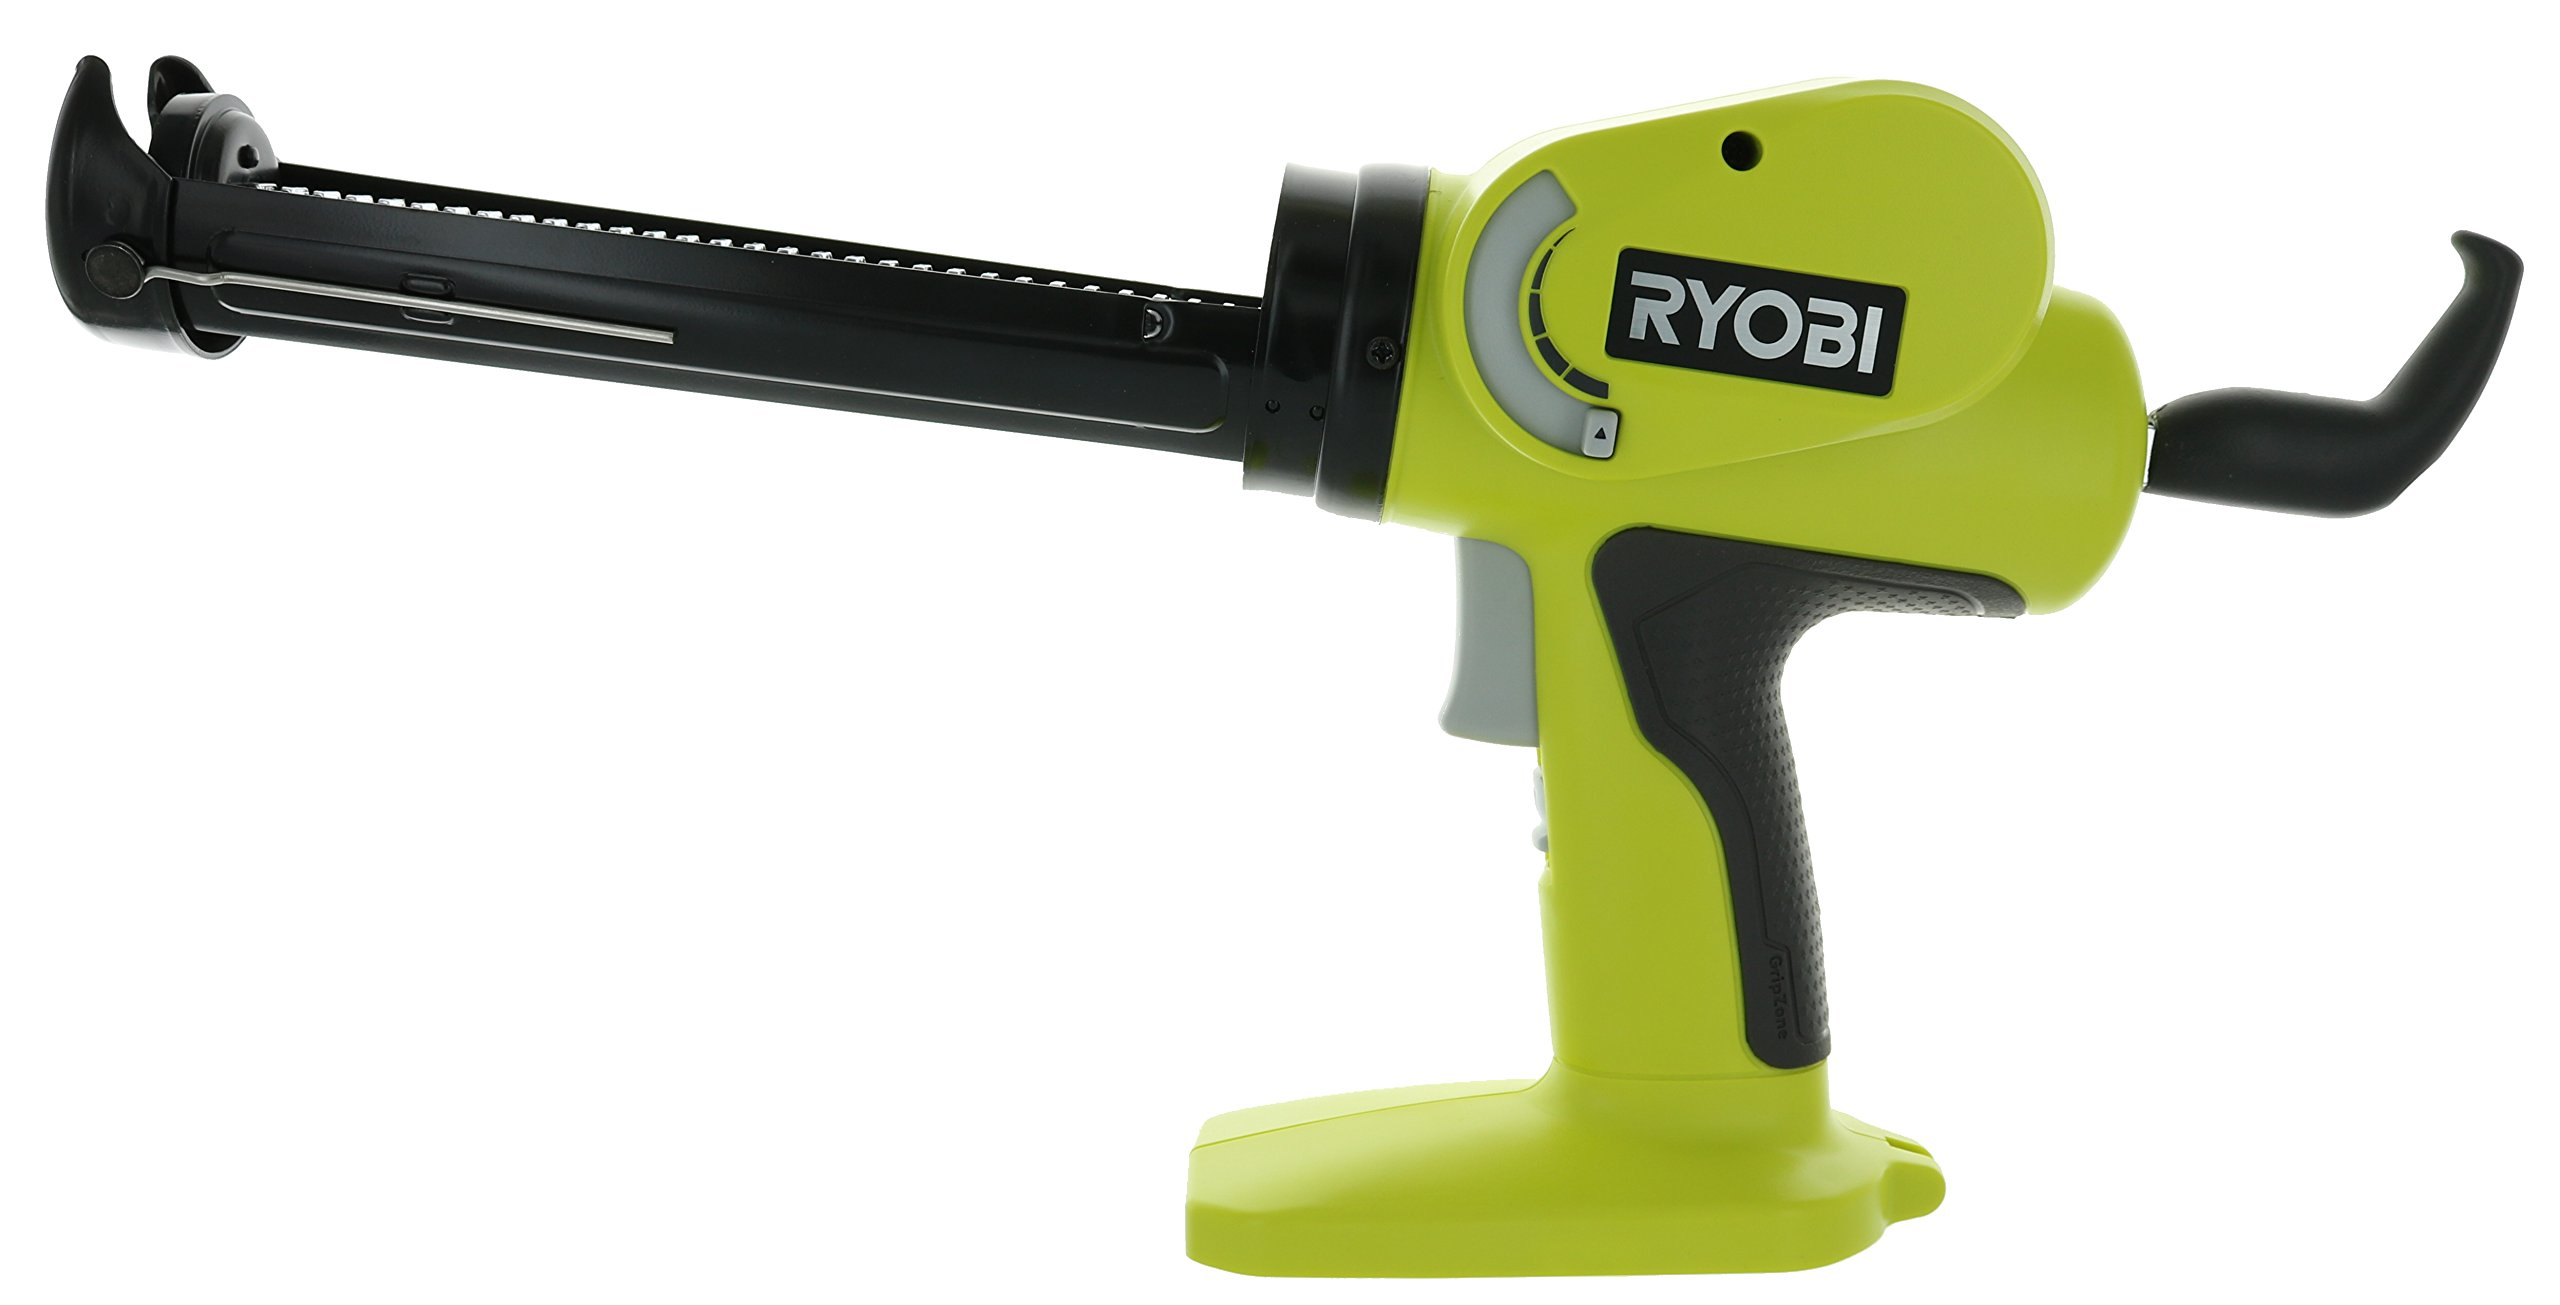 Ryobi P310G 18v Pistol Grip Variable Discharge Rate Power Caulk and Adhesive Gun (Tool Only, Holds 10 Ounce Carriage)